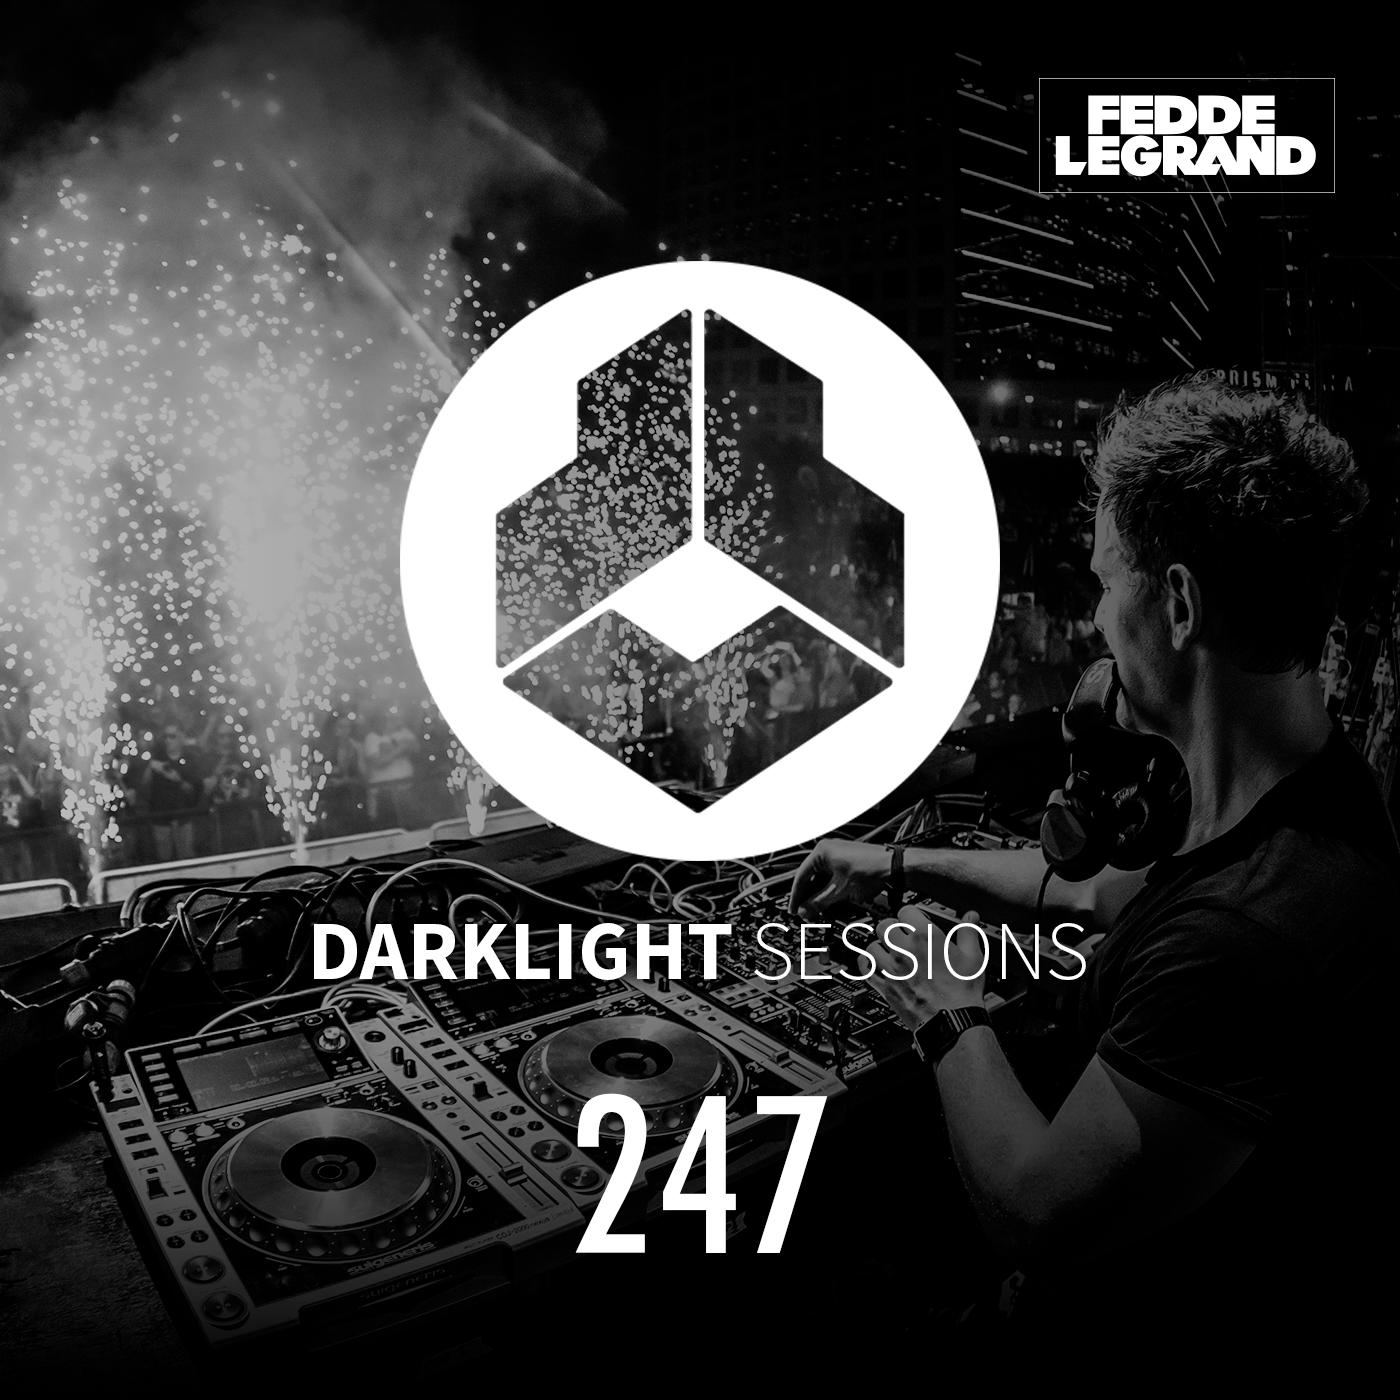 Darklight Sessions 247